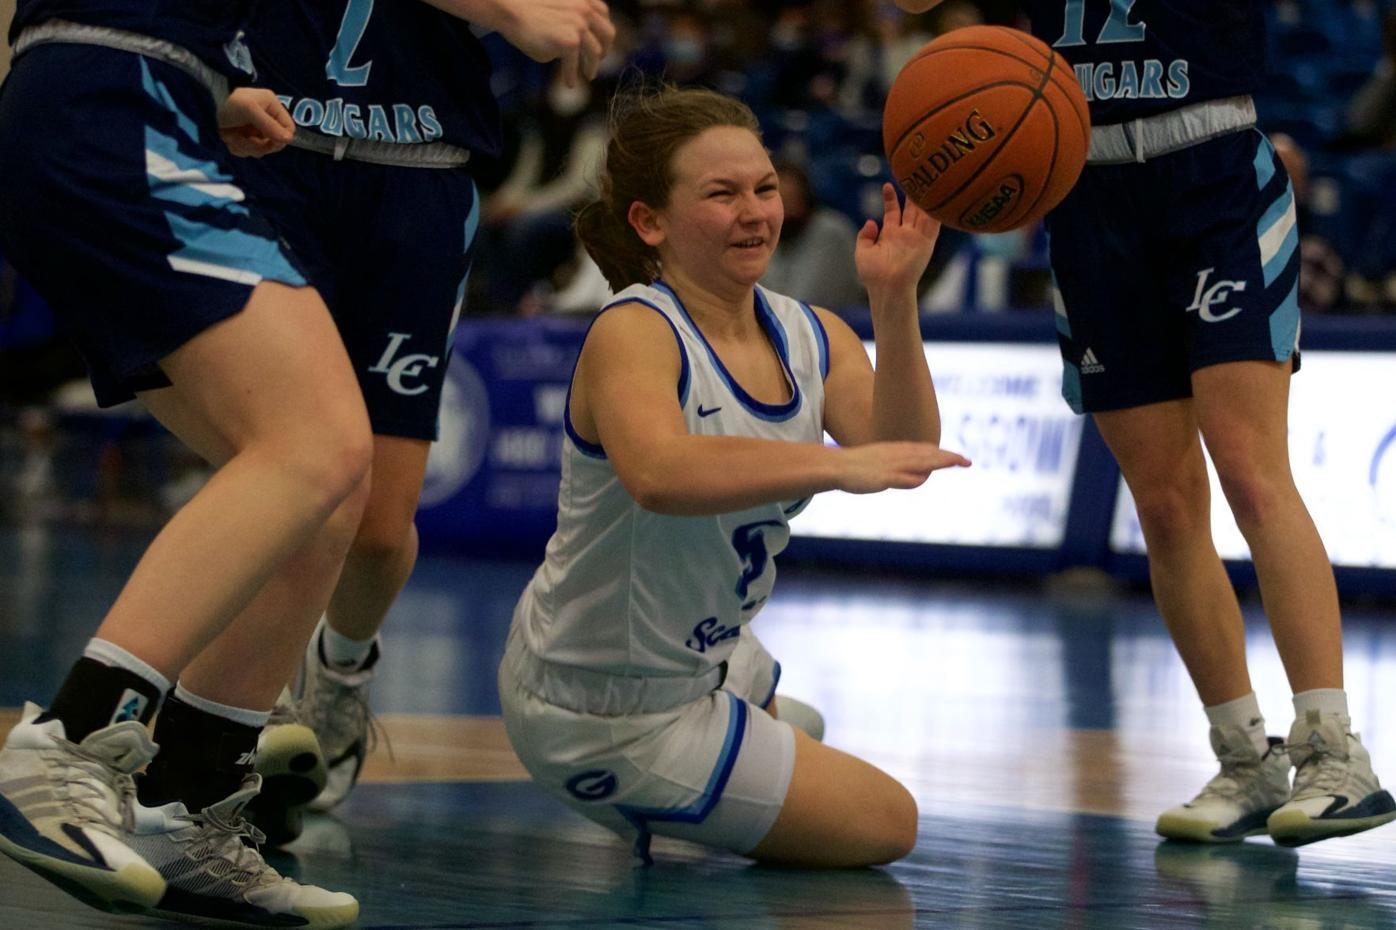 210220-sports-LC at Glasgow girls' hoops-outbound 9.jpg